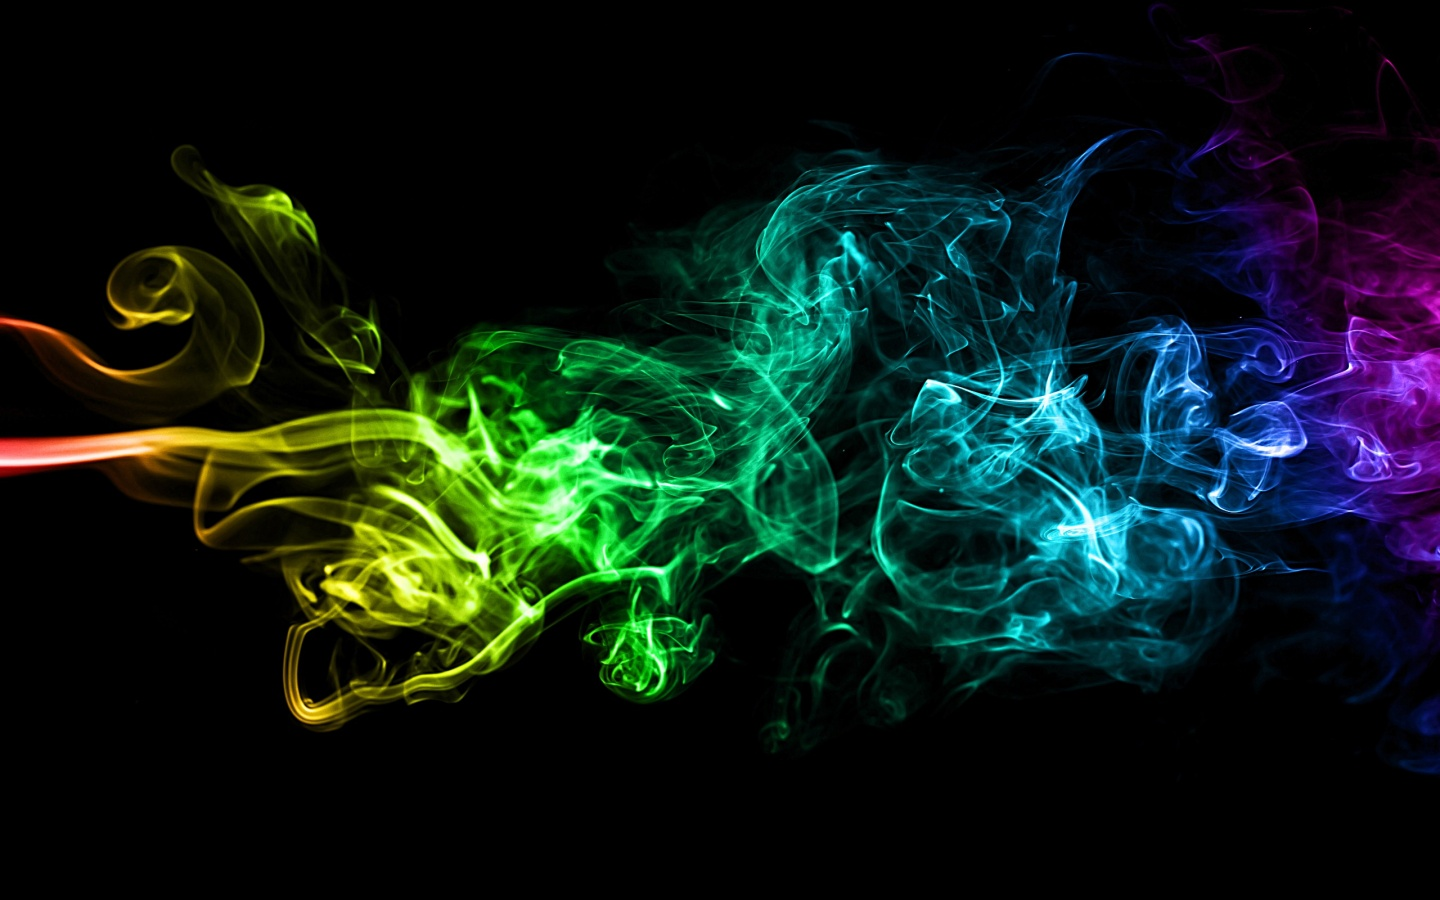 Rasta Smoke Background wallpaper wallpaper hd background desktop 1440x900